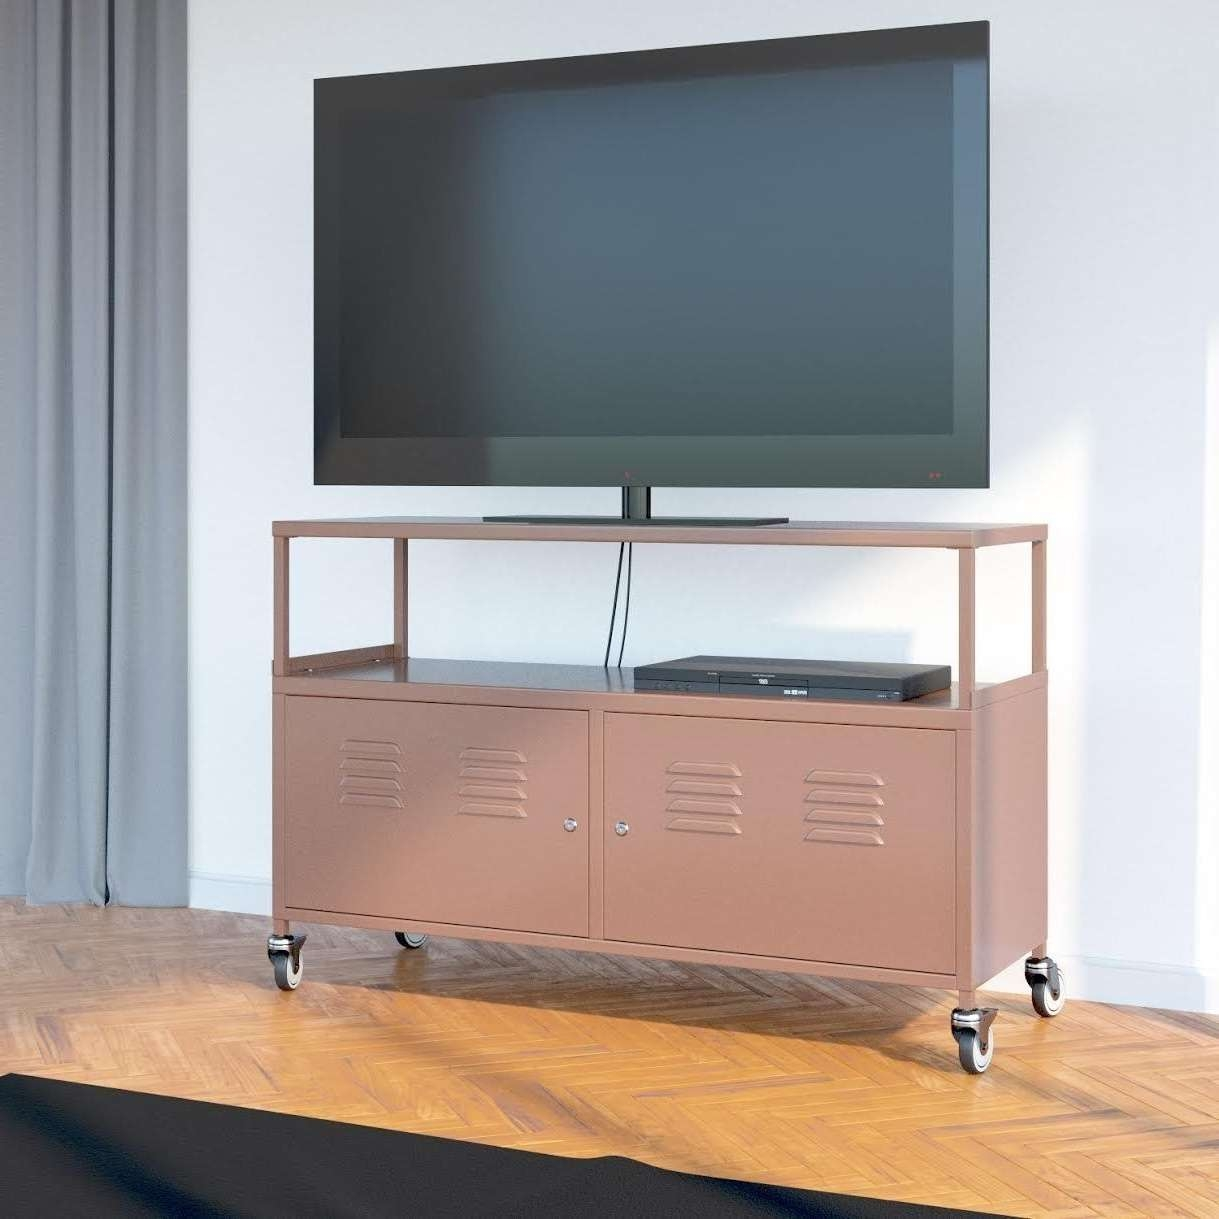 Tuscany Metal Lockable Tv Stand Cabinet Media Storage With Rolling Throughout Lockable Tv Stands (View 5 of 20)